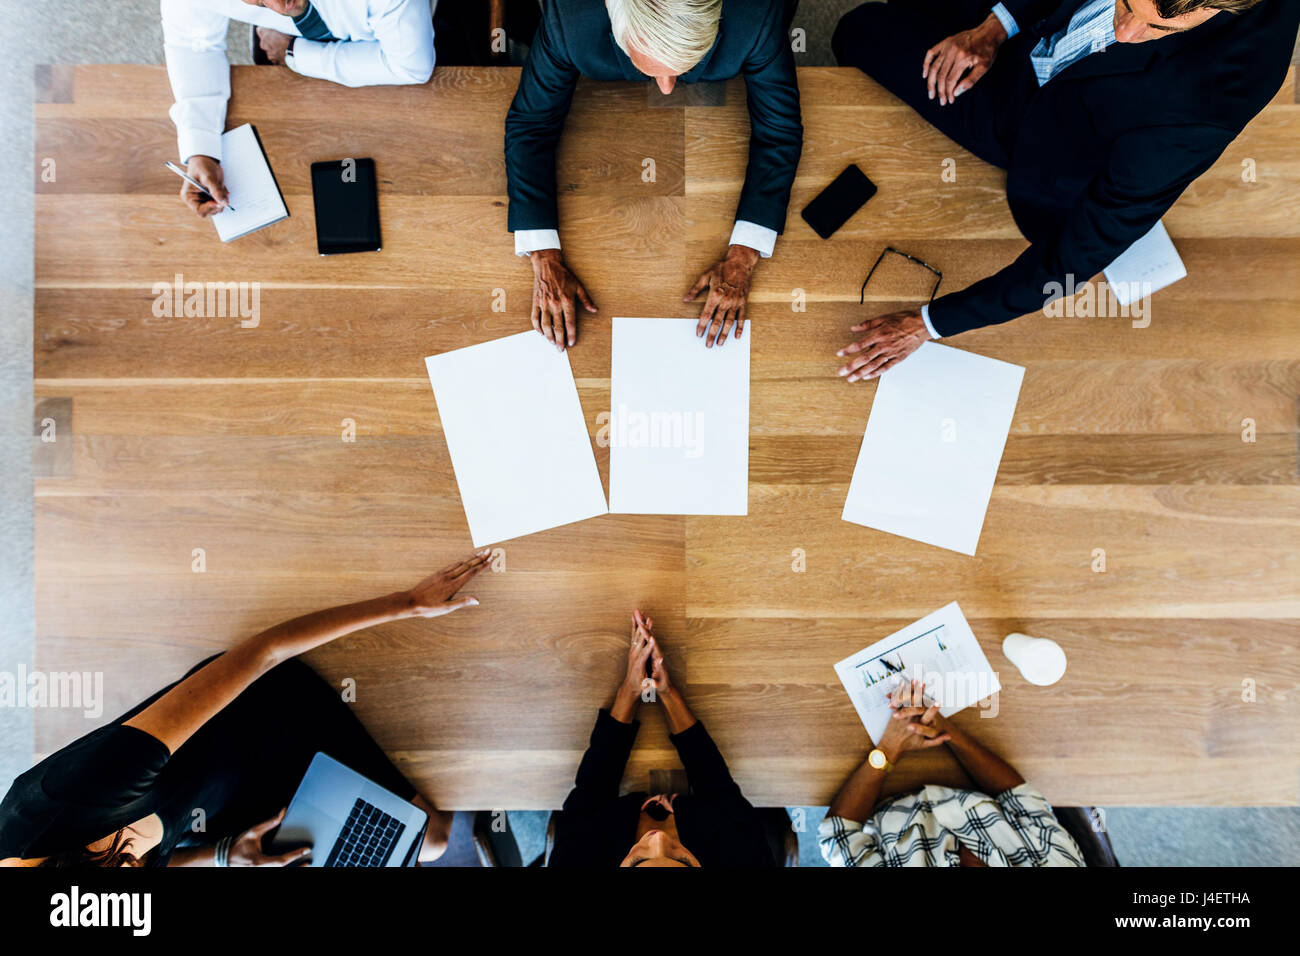 Group of people placing blank placards on table. Top view of business people having a meeting. - Stock Image